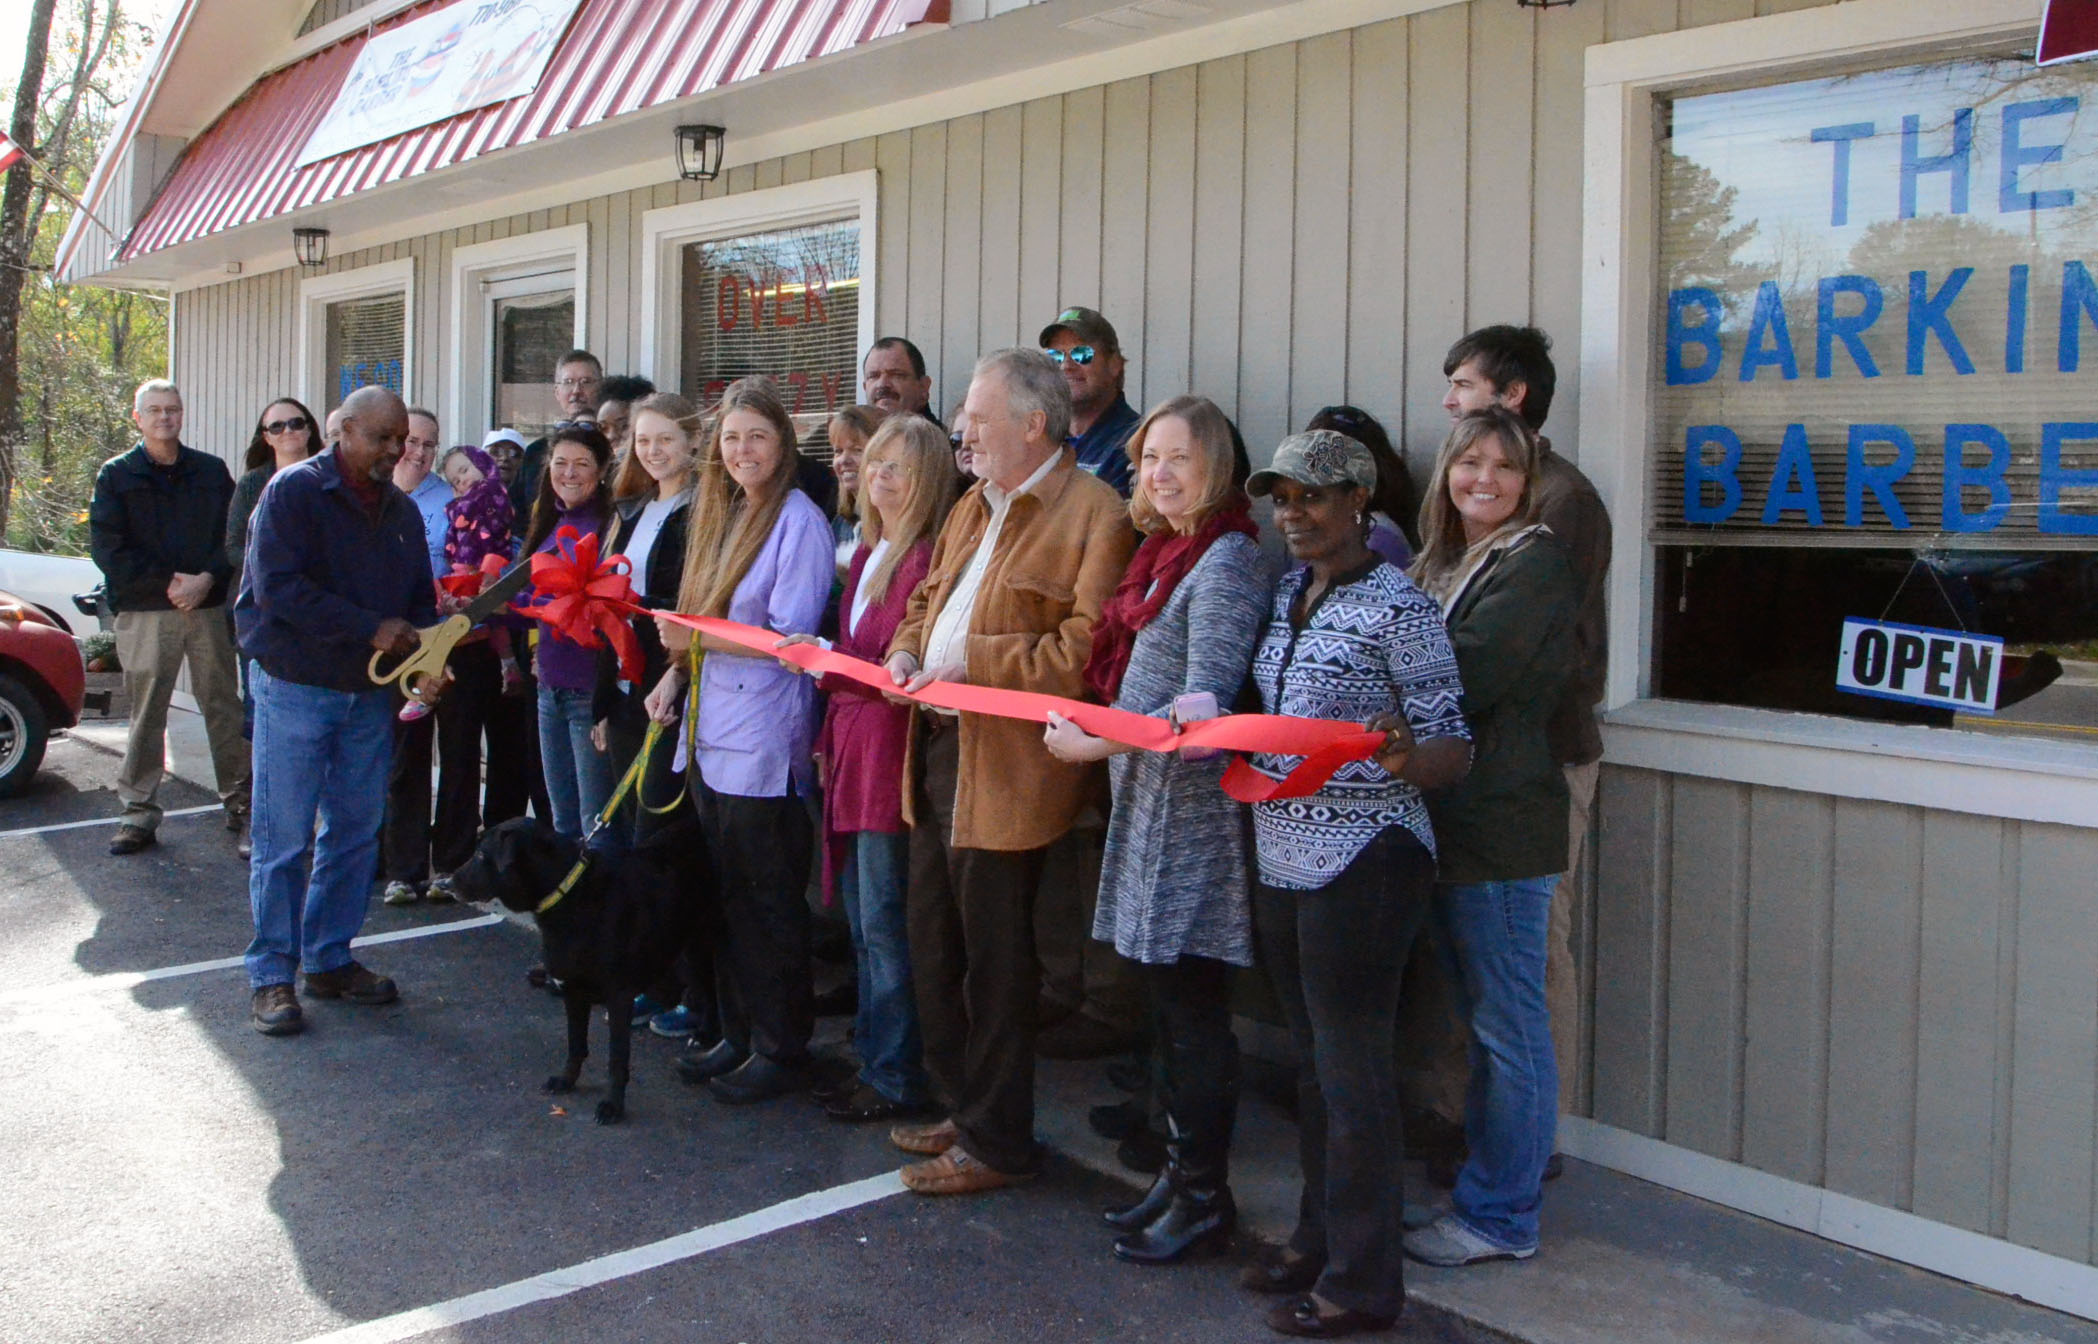 Ribbon Cutting for The Barking Barber2